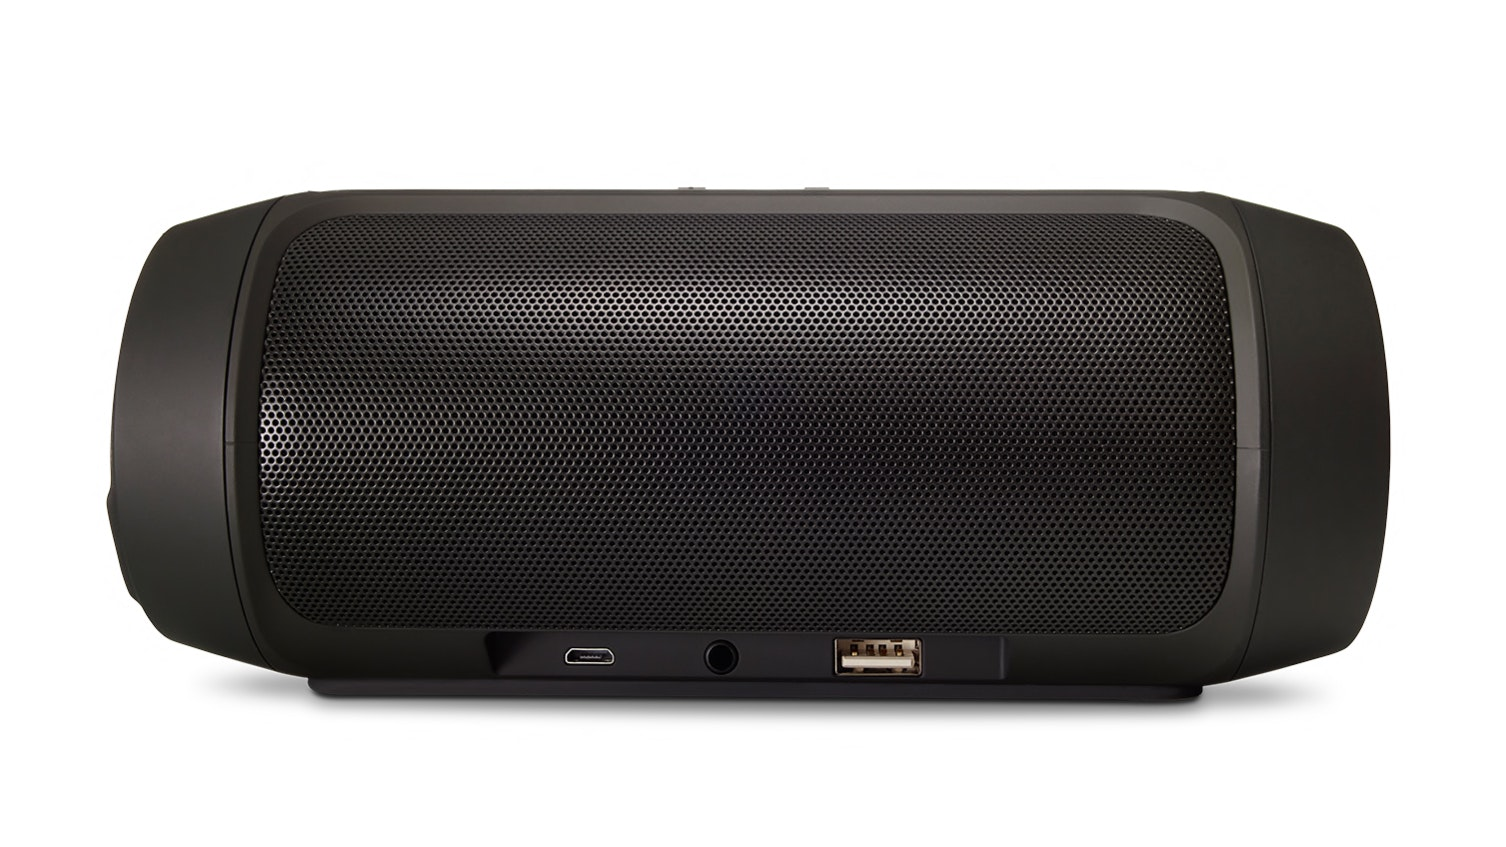 Measuring just over 7 inches long, the JBL Charge 2+ is a wireless stereo speaker with a 12-hour battery life.